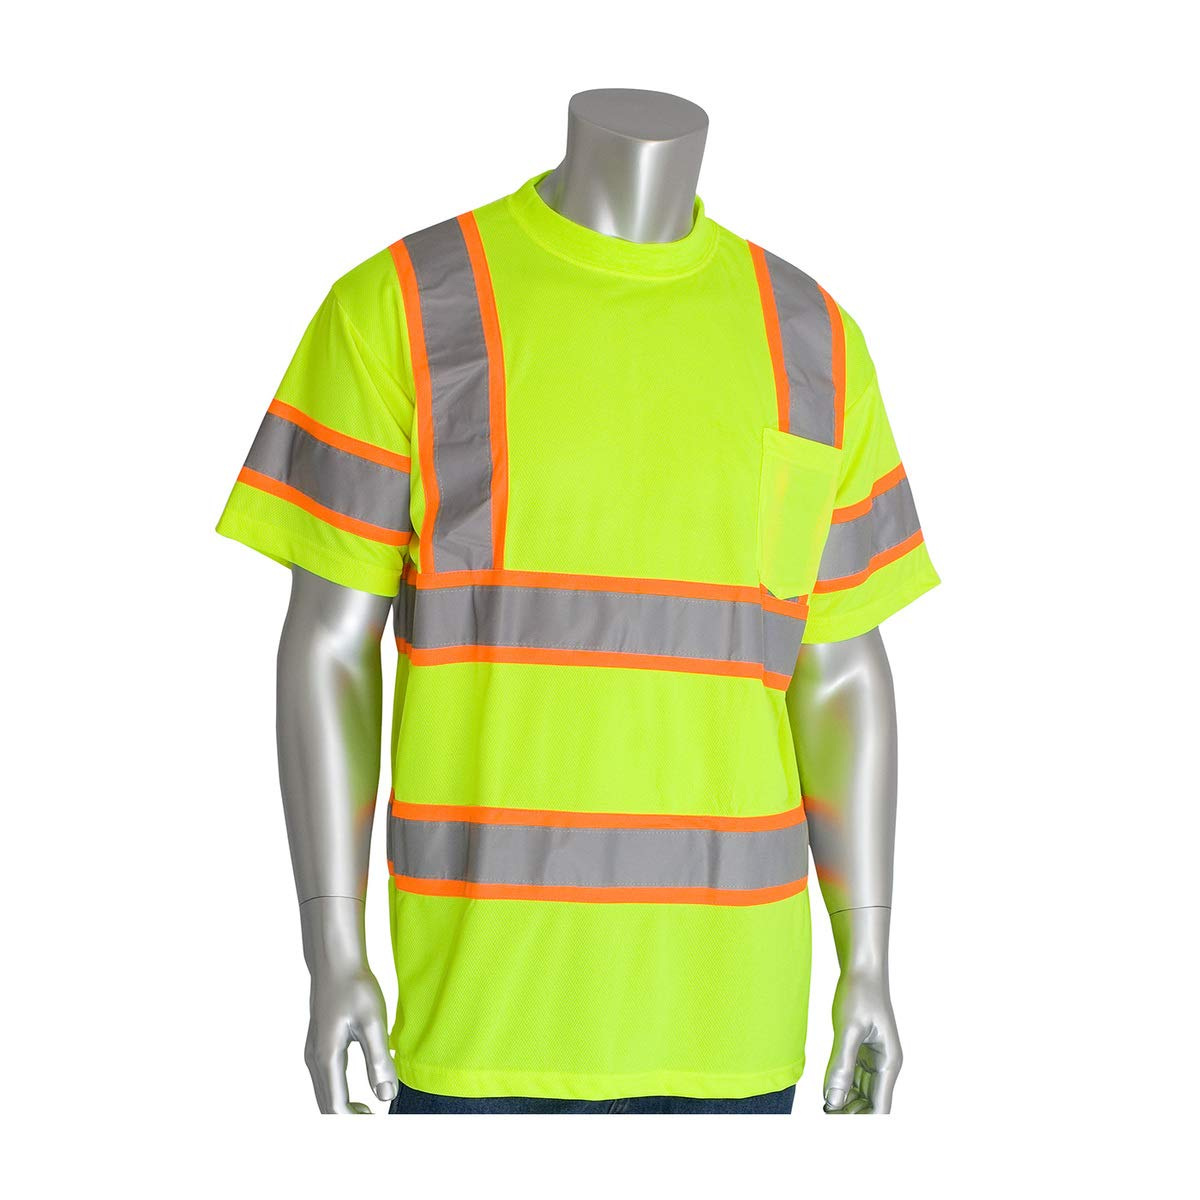 Protective Industrial Products Large Hi-Viz Yellow/Hi-Viz Orange 1 Polyester/Birdseye Mesh Two-Tone Shirt - Pack of 25 by PROTECTIVE INDUSTRIAL PRODUCTS (Image #1)